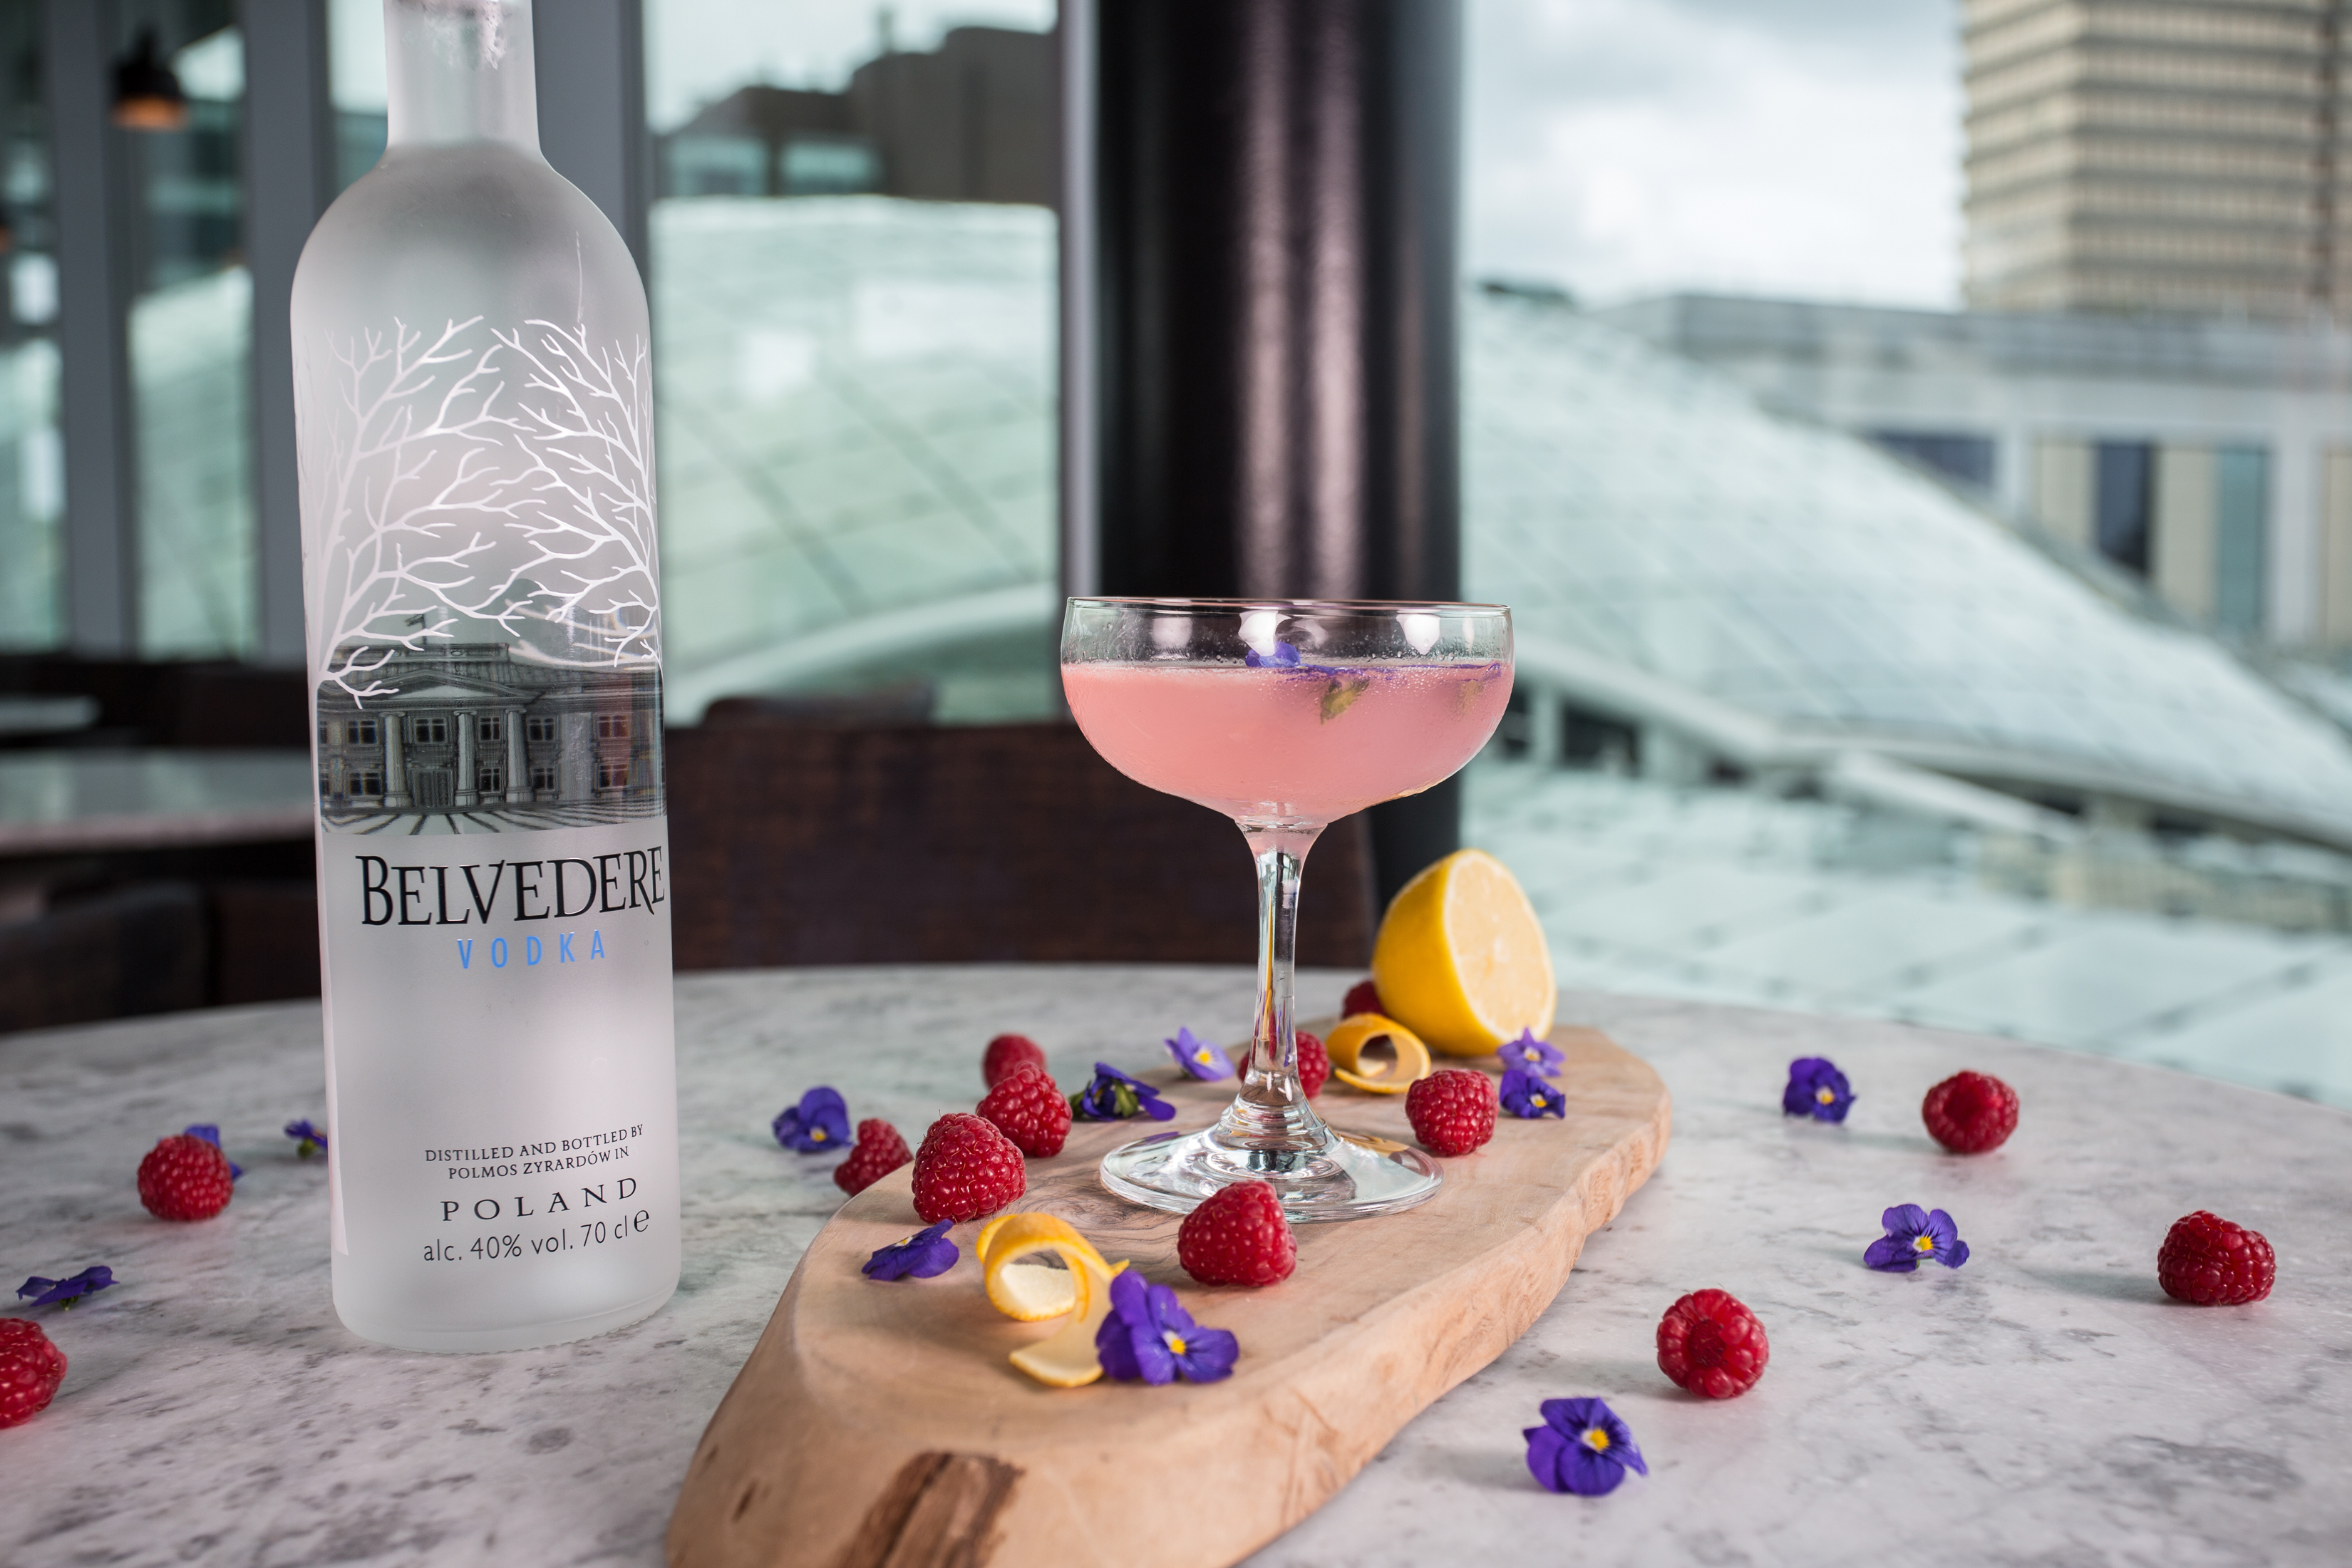 belvedere vodka, raspberries, lemon and flowers in a cocktail